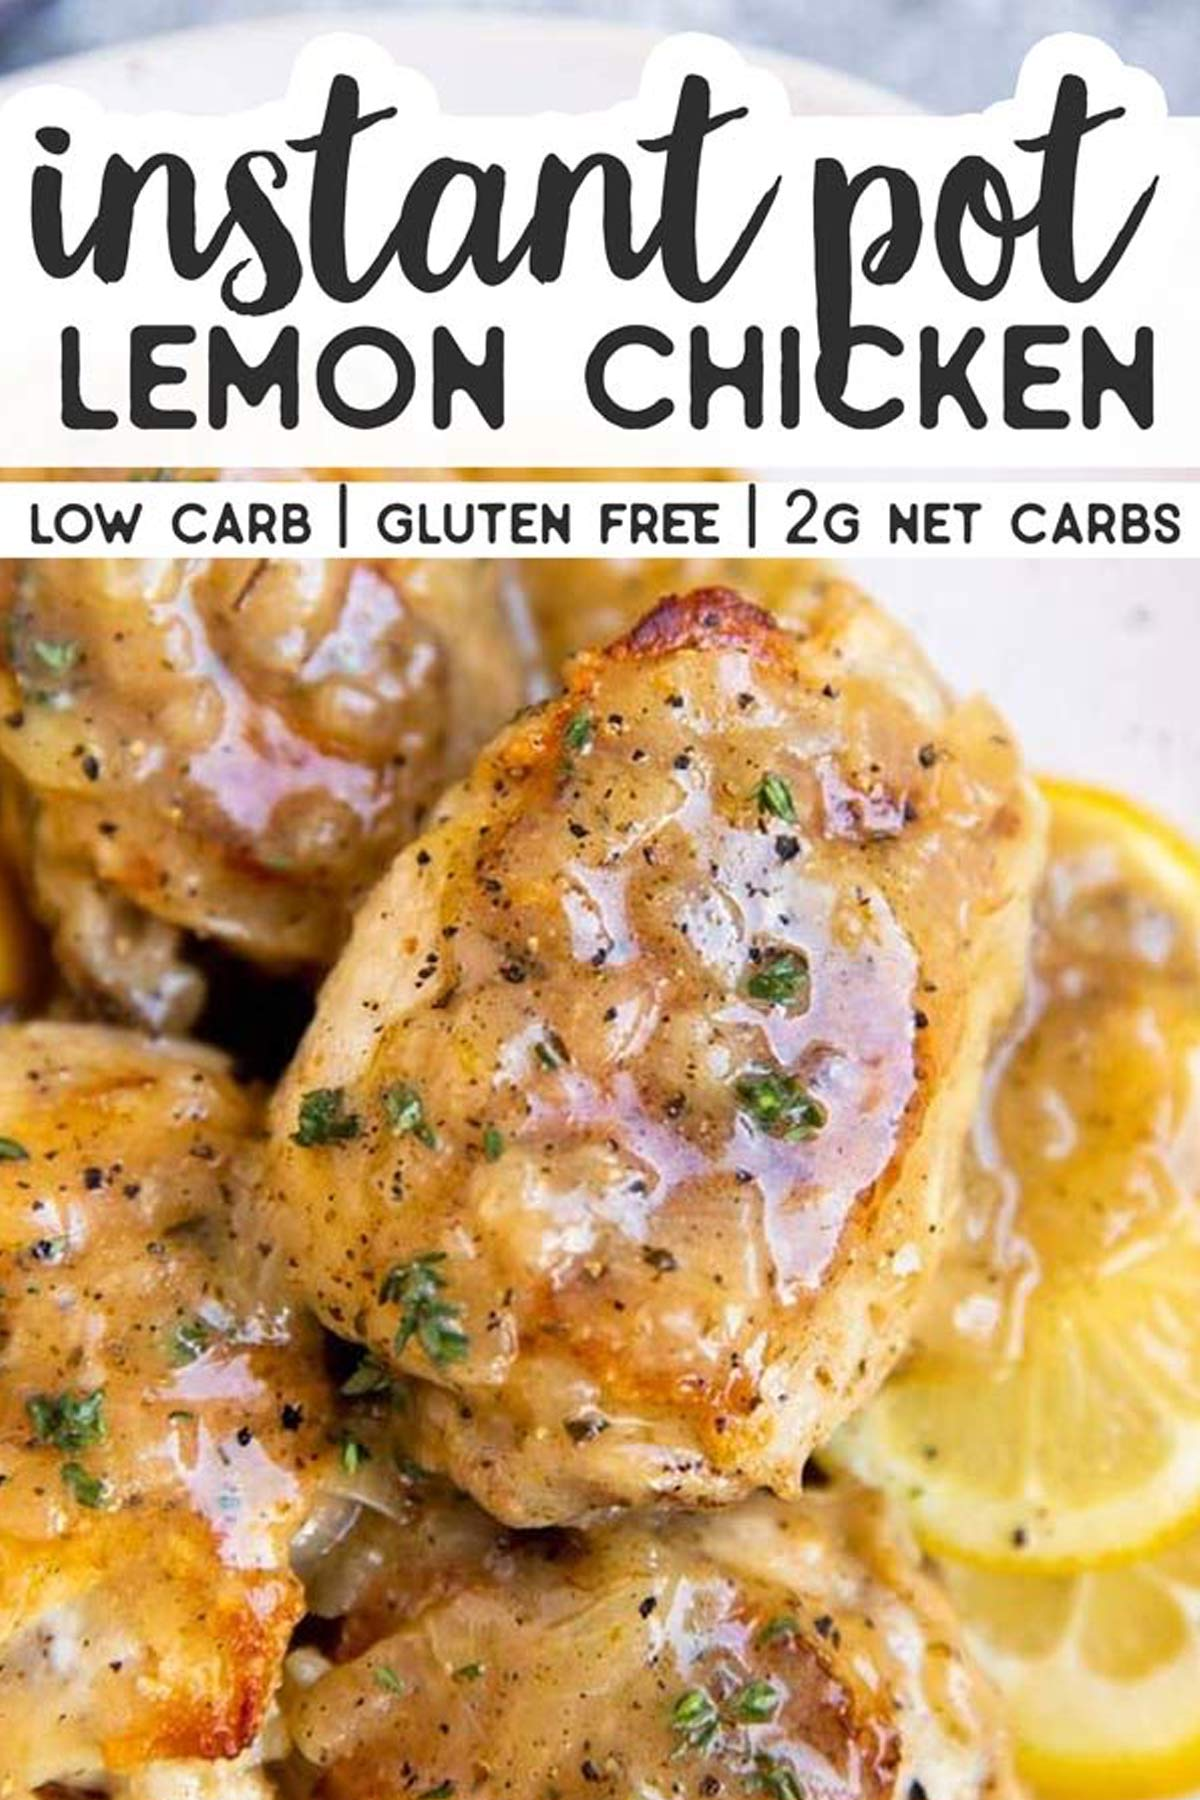 close up photo of chicken thigh in lemon sauce with text overlay